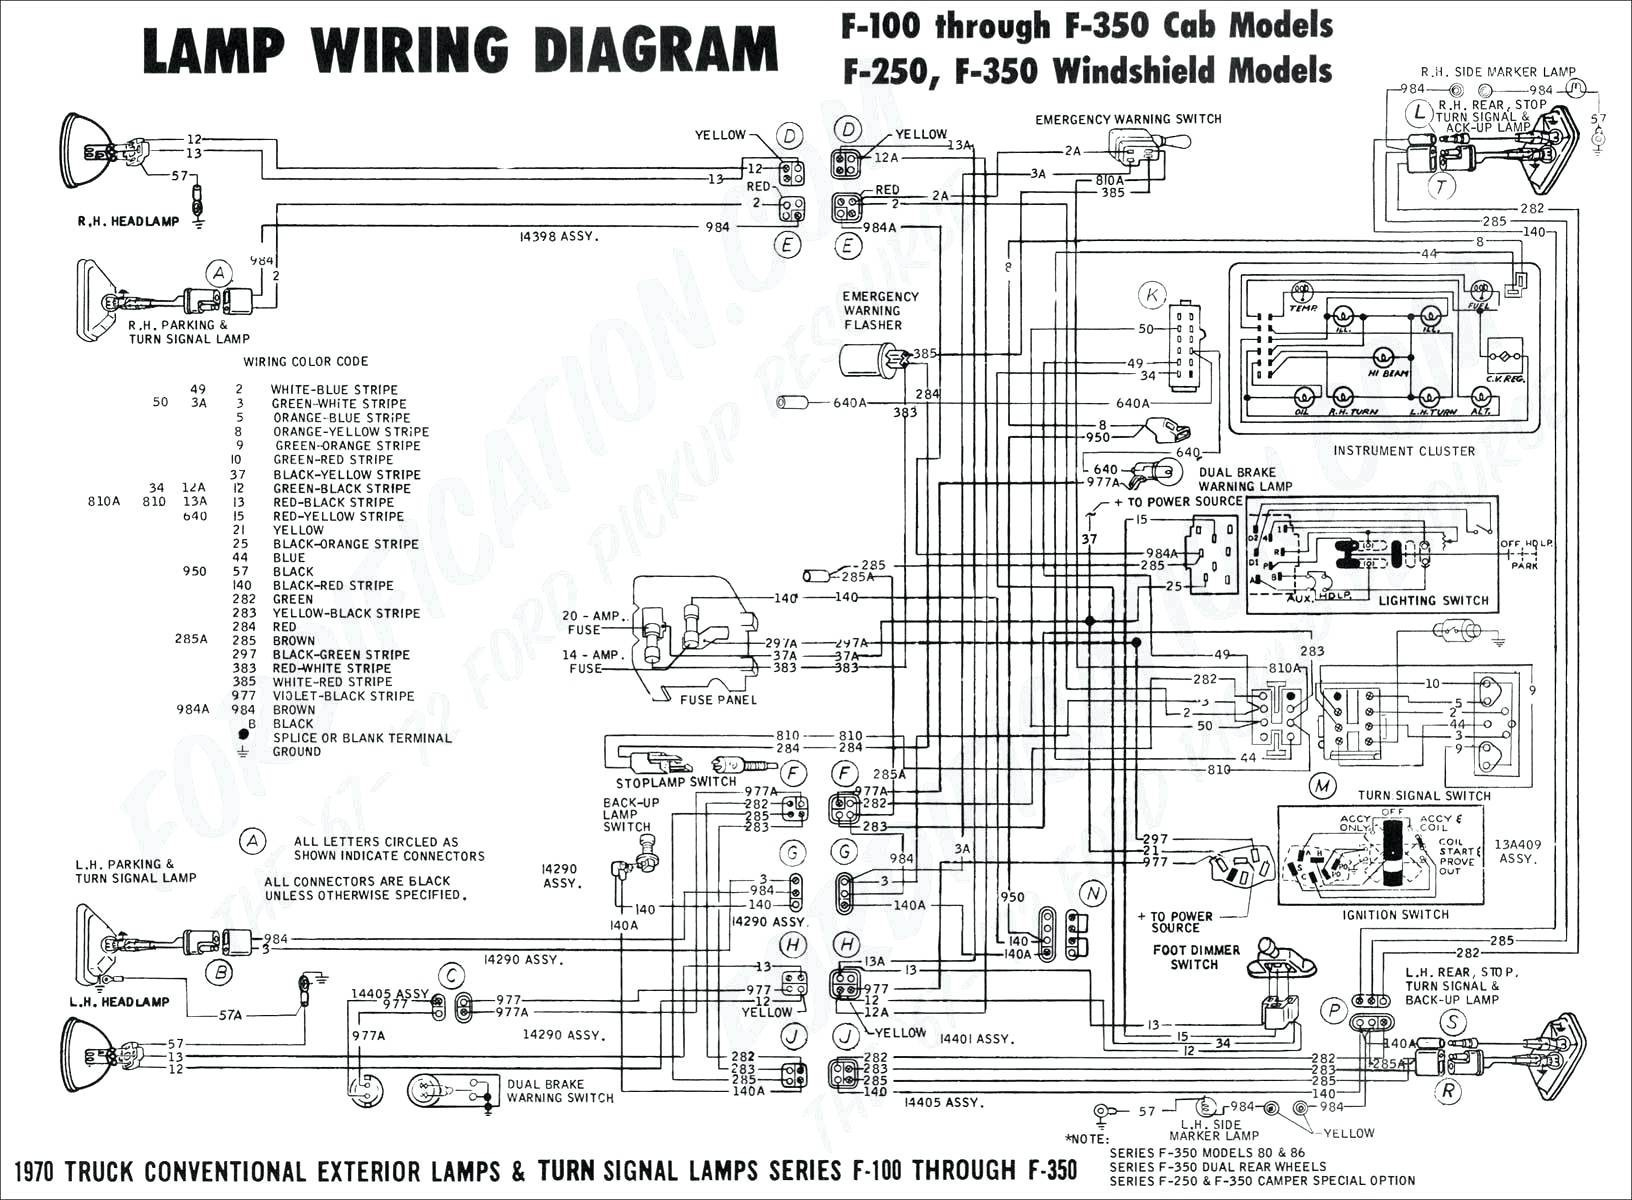 M9000 Kubota Tractor Wiring Diagrams - Everything Wiring Diagram on